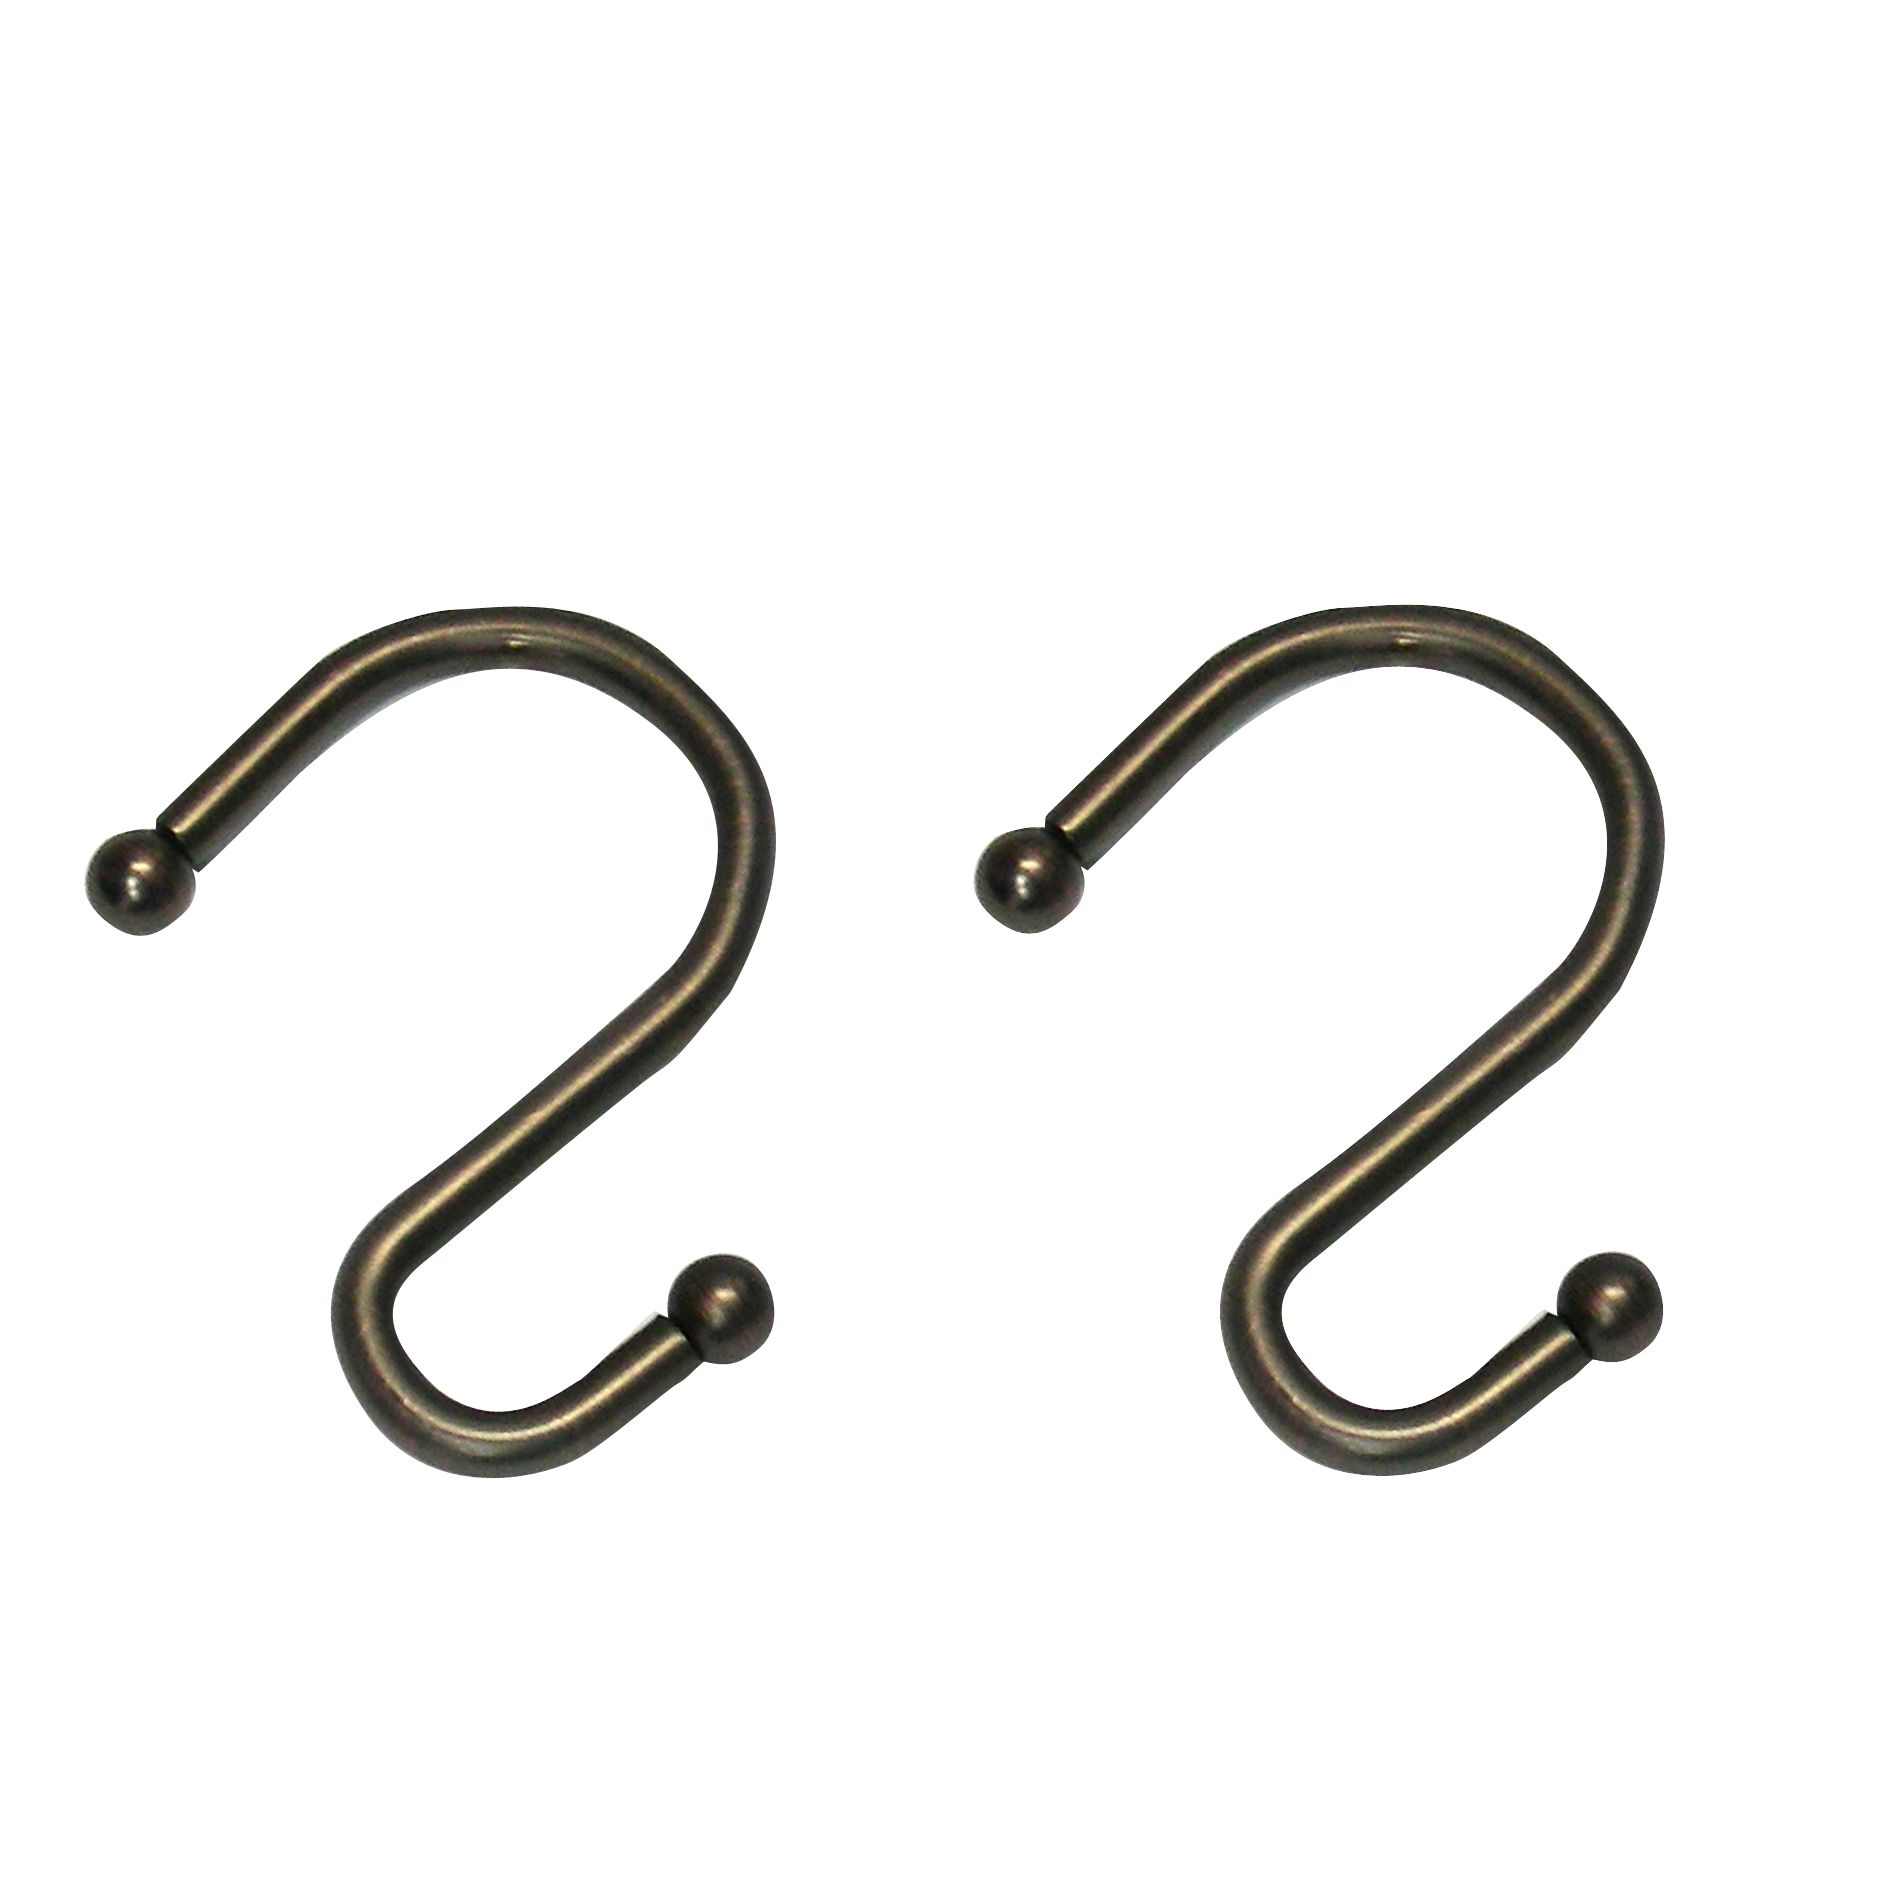 Upc 011244318905 Cannon Metal S Hook Oil Rubbed Bronze